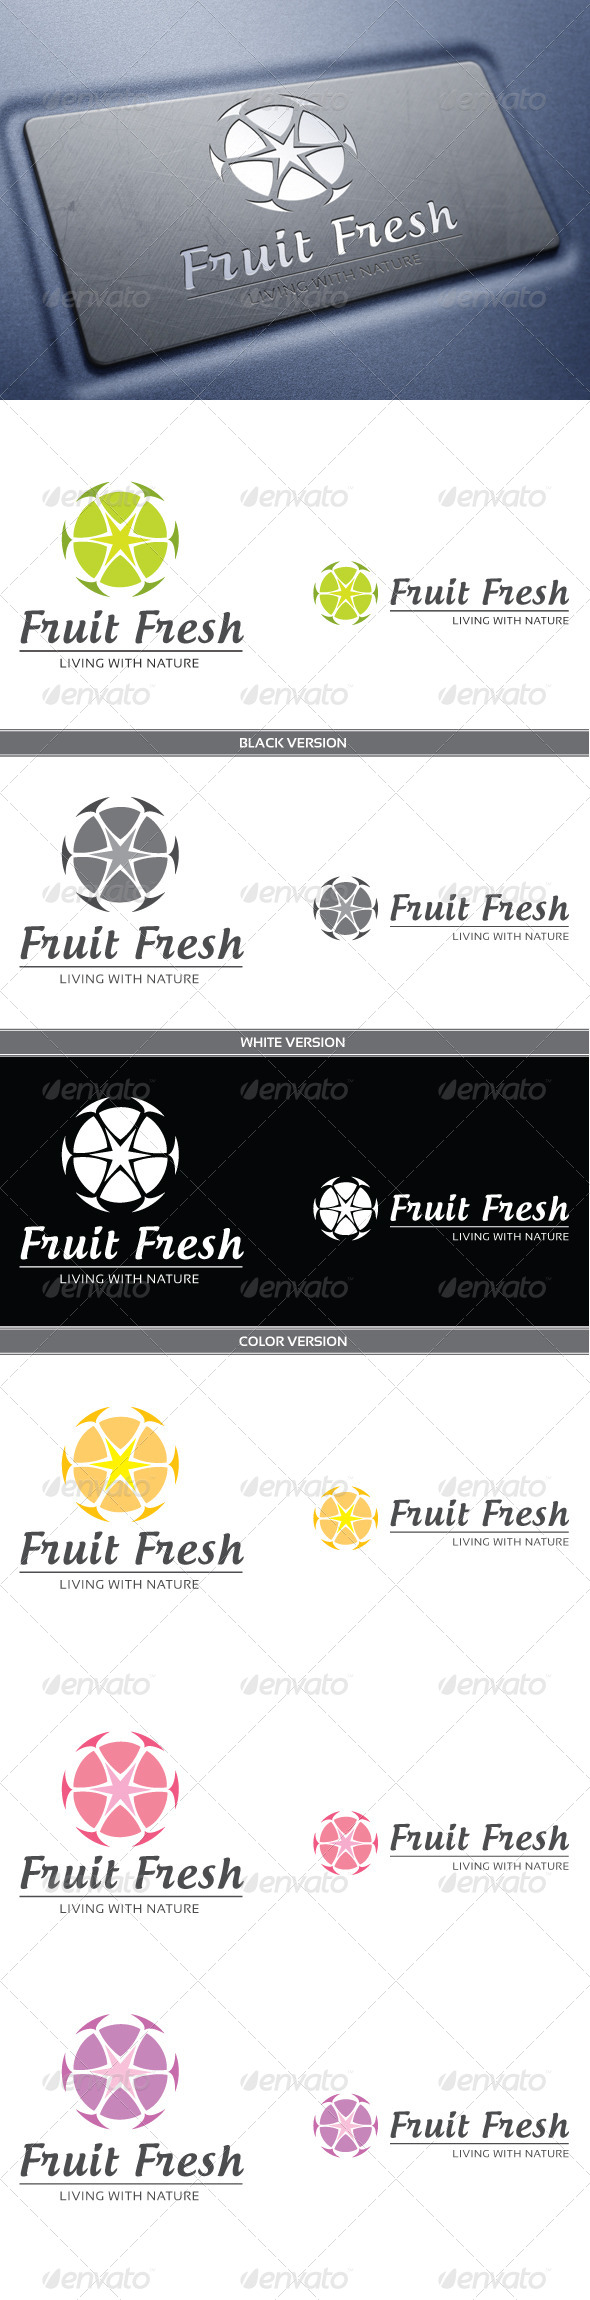 GraphicRiver Fruit Fresh 3909269